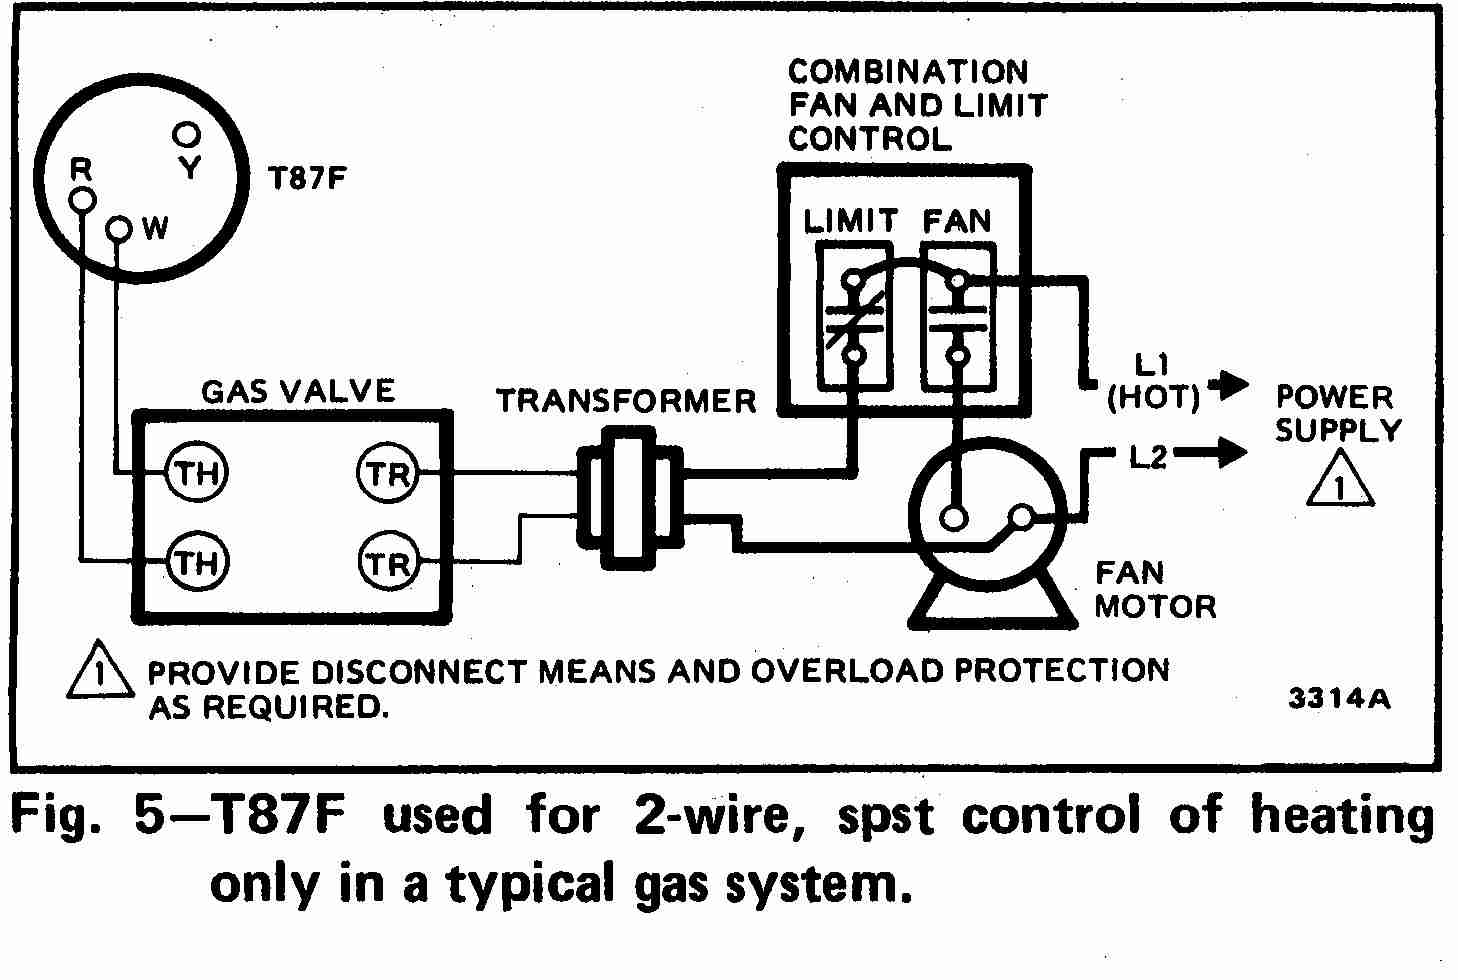 TT_T87F_0002_2Wg_DJF room thermostat wiring diagrams for hvac systems honeywell oil furnace wiring diagrams at reclaimingppi.co